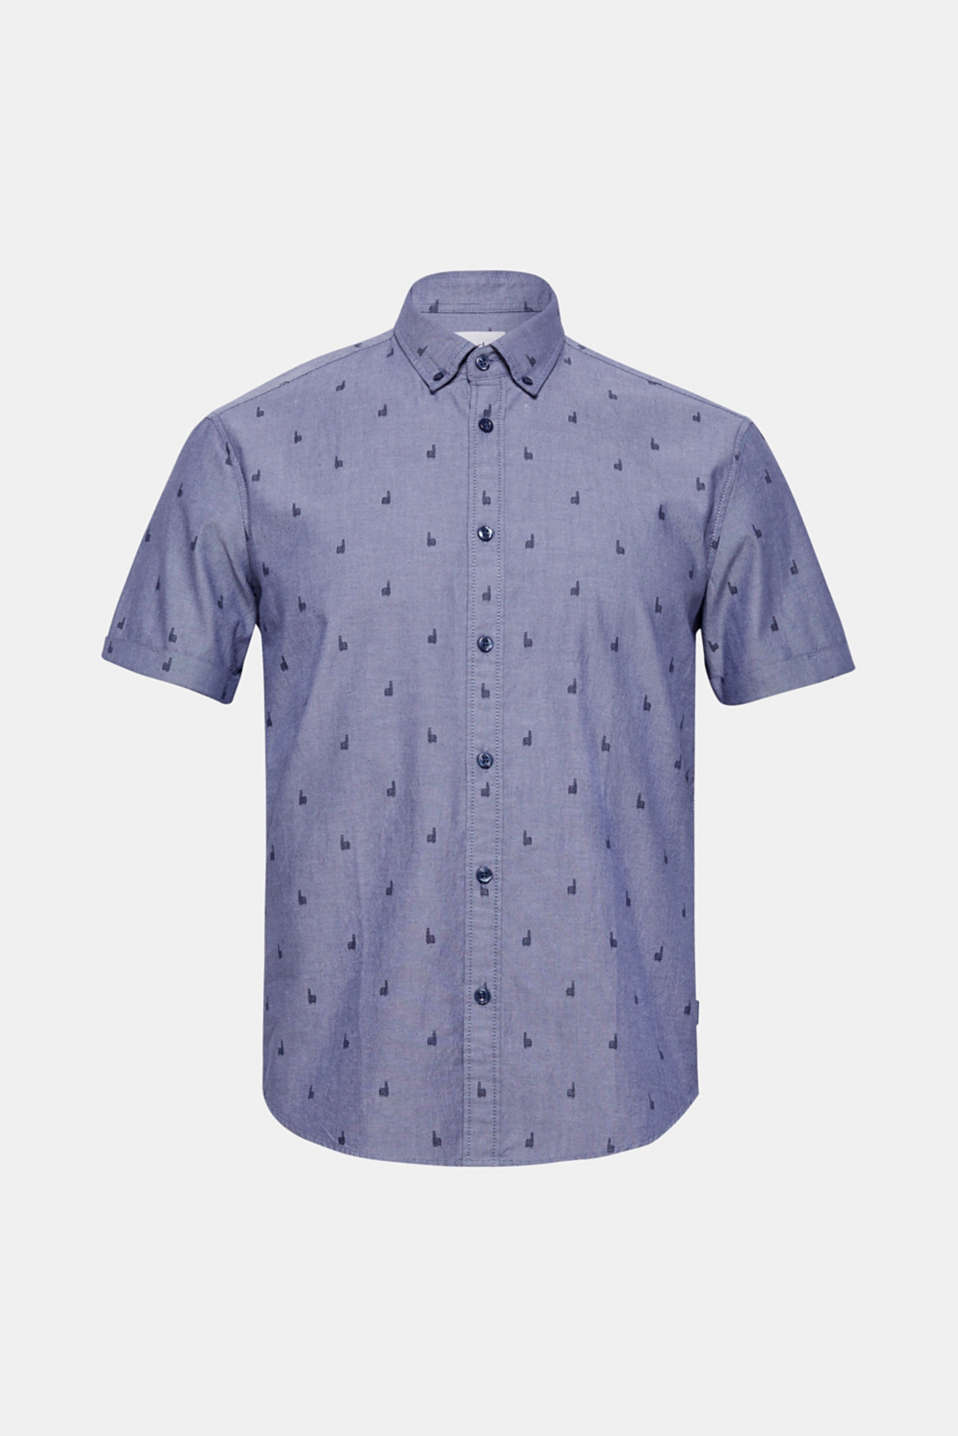 Shirts woven Regular fit, NAVY 2, detail image number 6